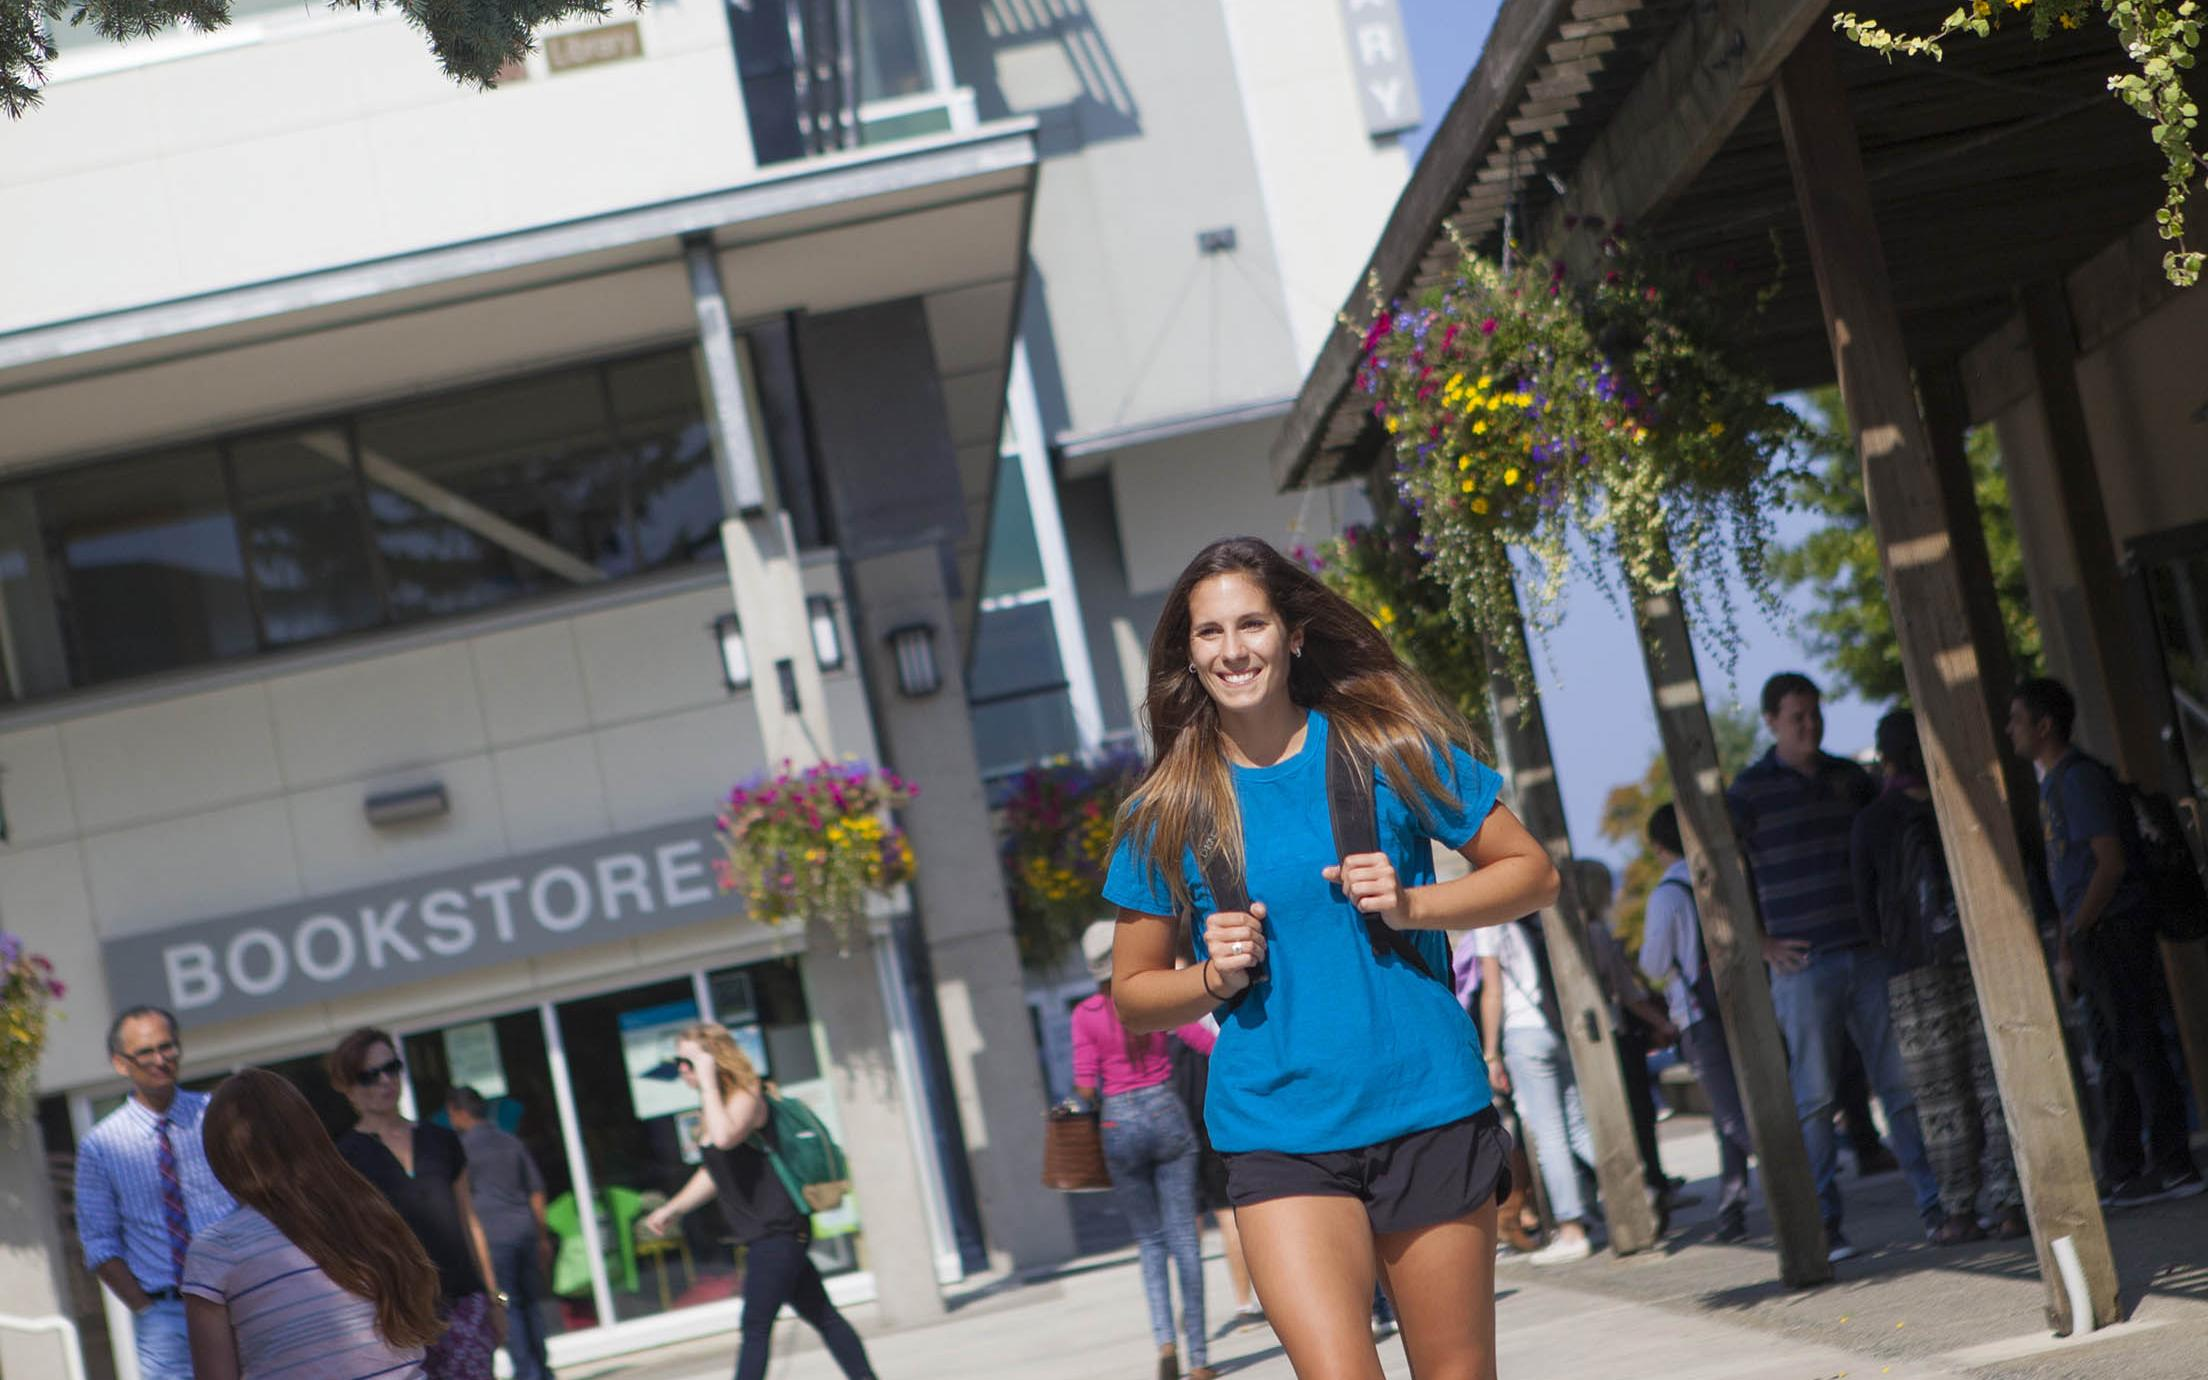 A Student of the Bachelor of Tourism Management program on campus of VIU's tourism school on Vancouver Island